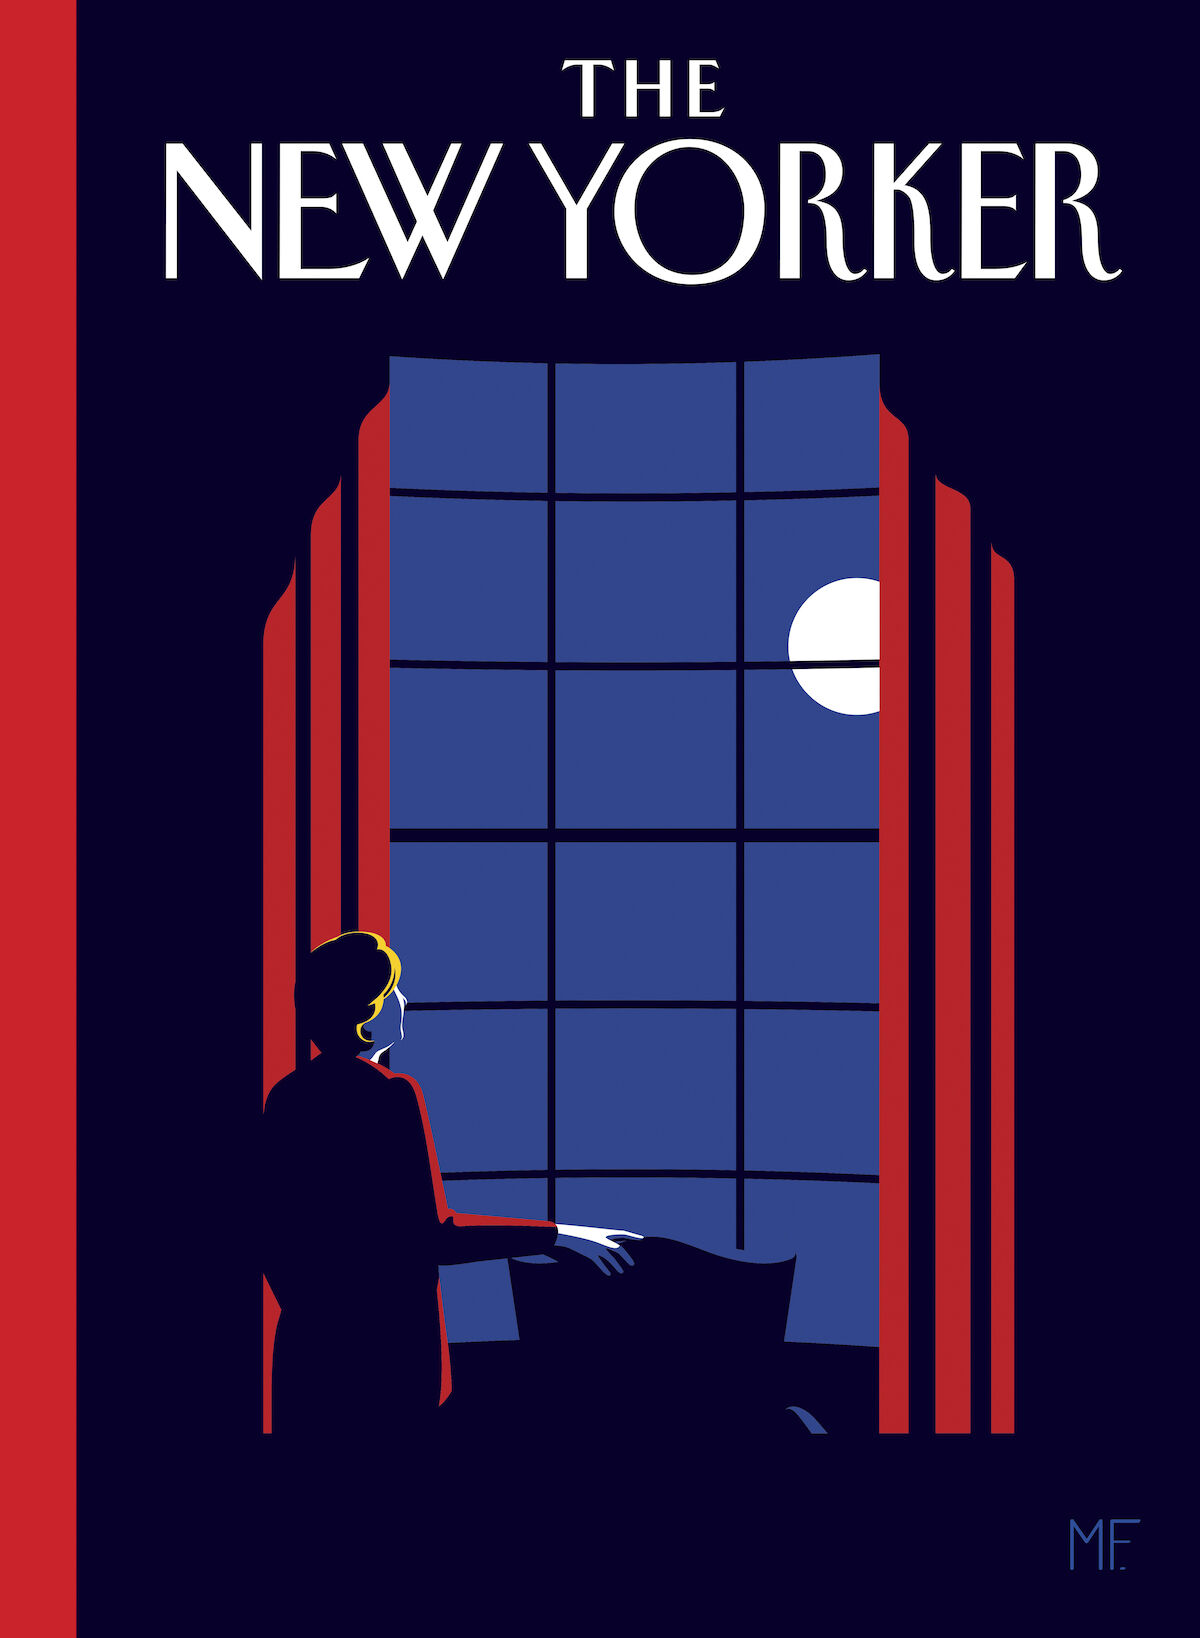 """The First,"" by Malika Favre. Courtesy of The New Yorker. Used with permission."